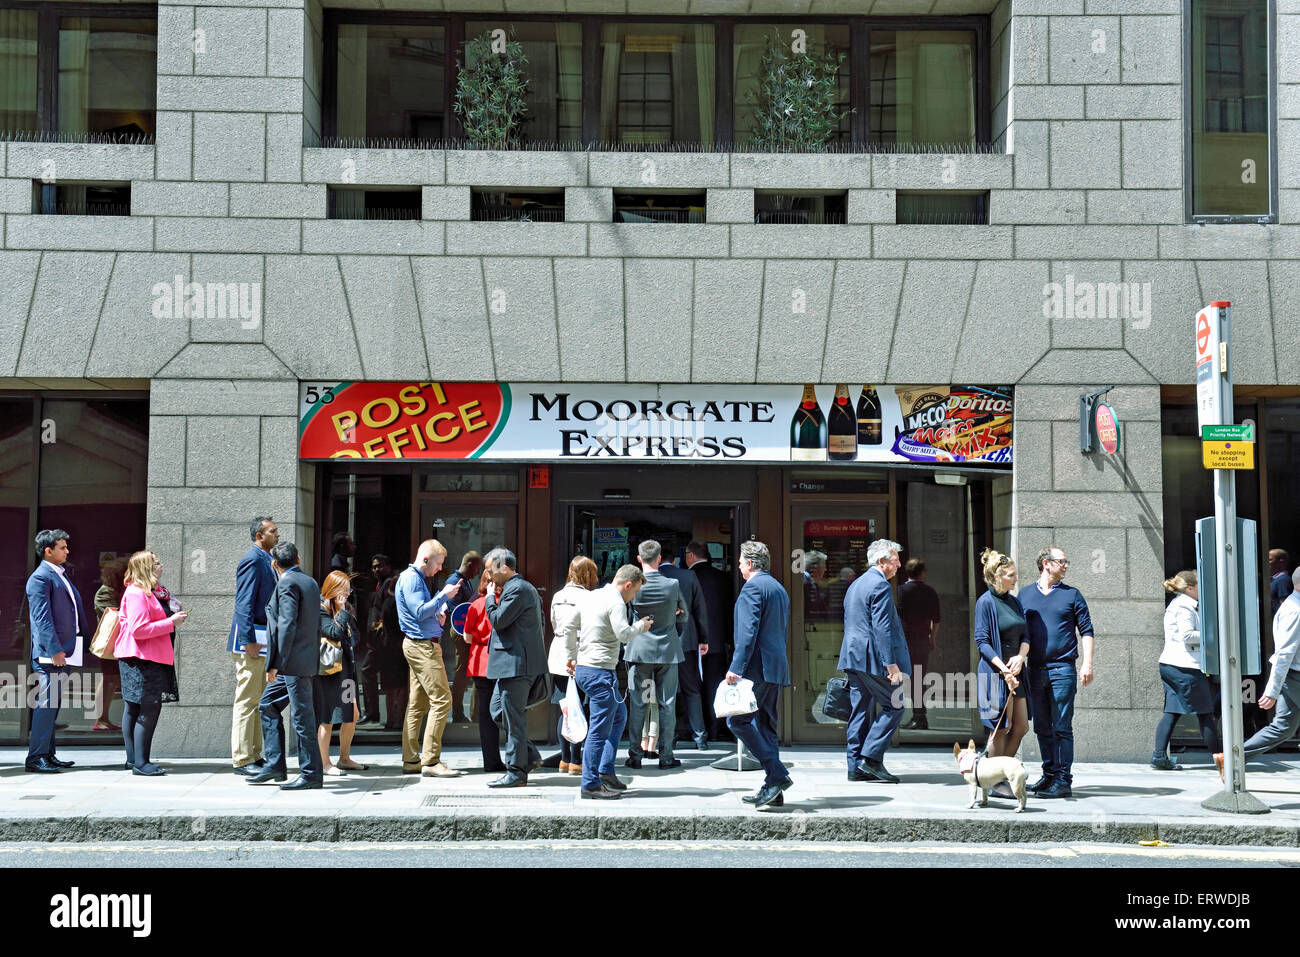 Queue outside Moorgate Express Post Office and convienence store, City of London, England Britain UK - Stock Image